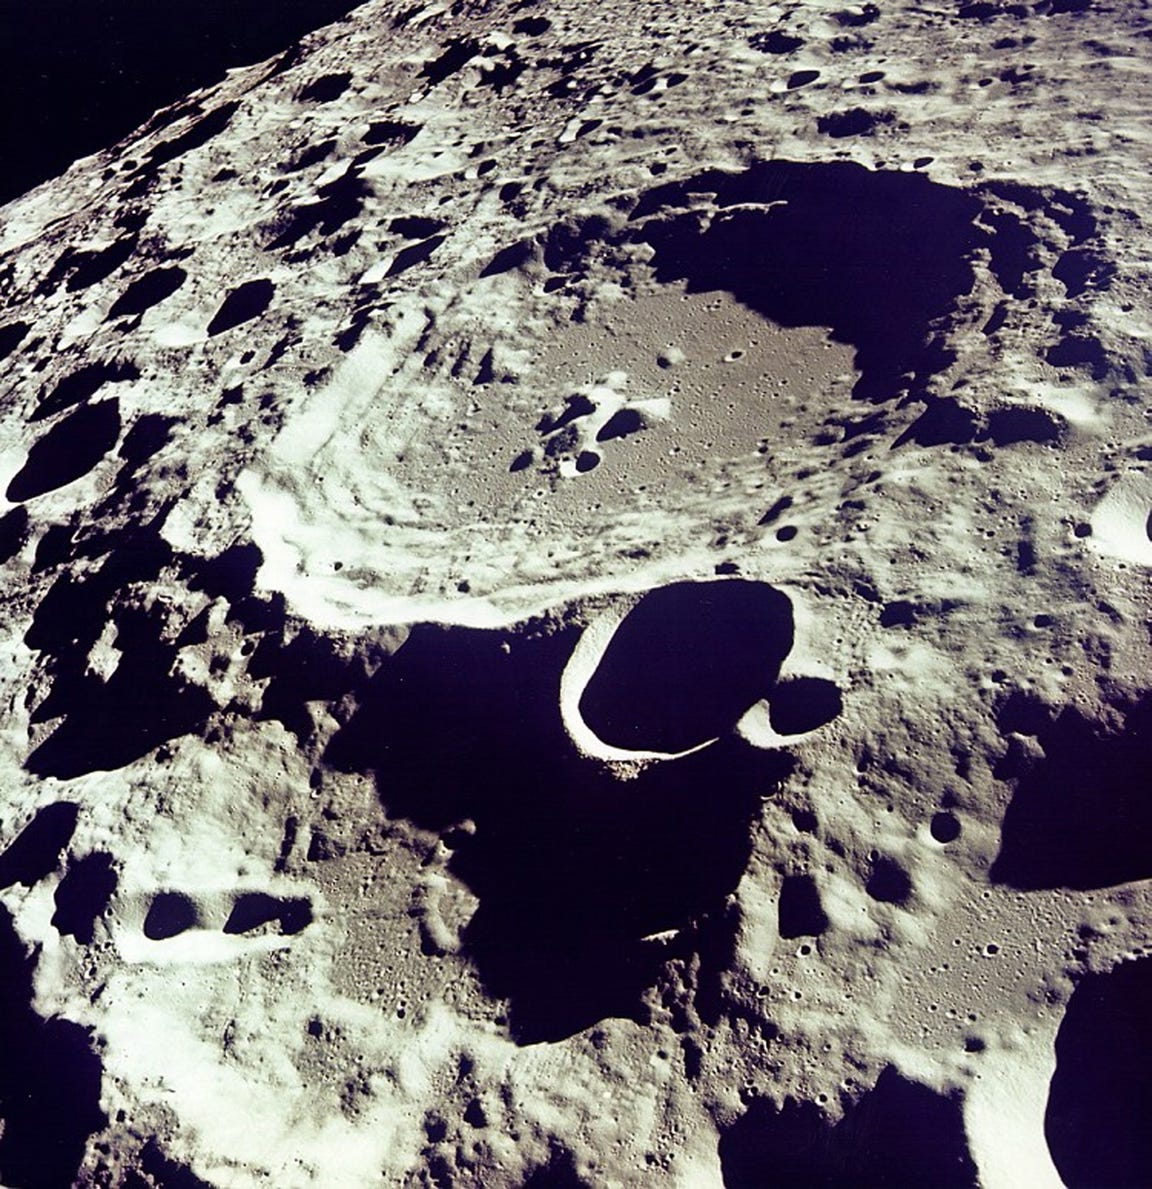 This is Crater 308 on the moon viewed from orbit on July 20, 1969.